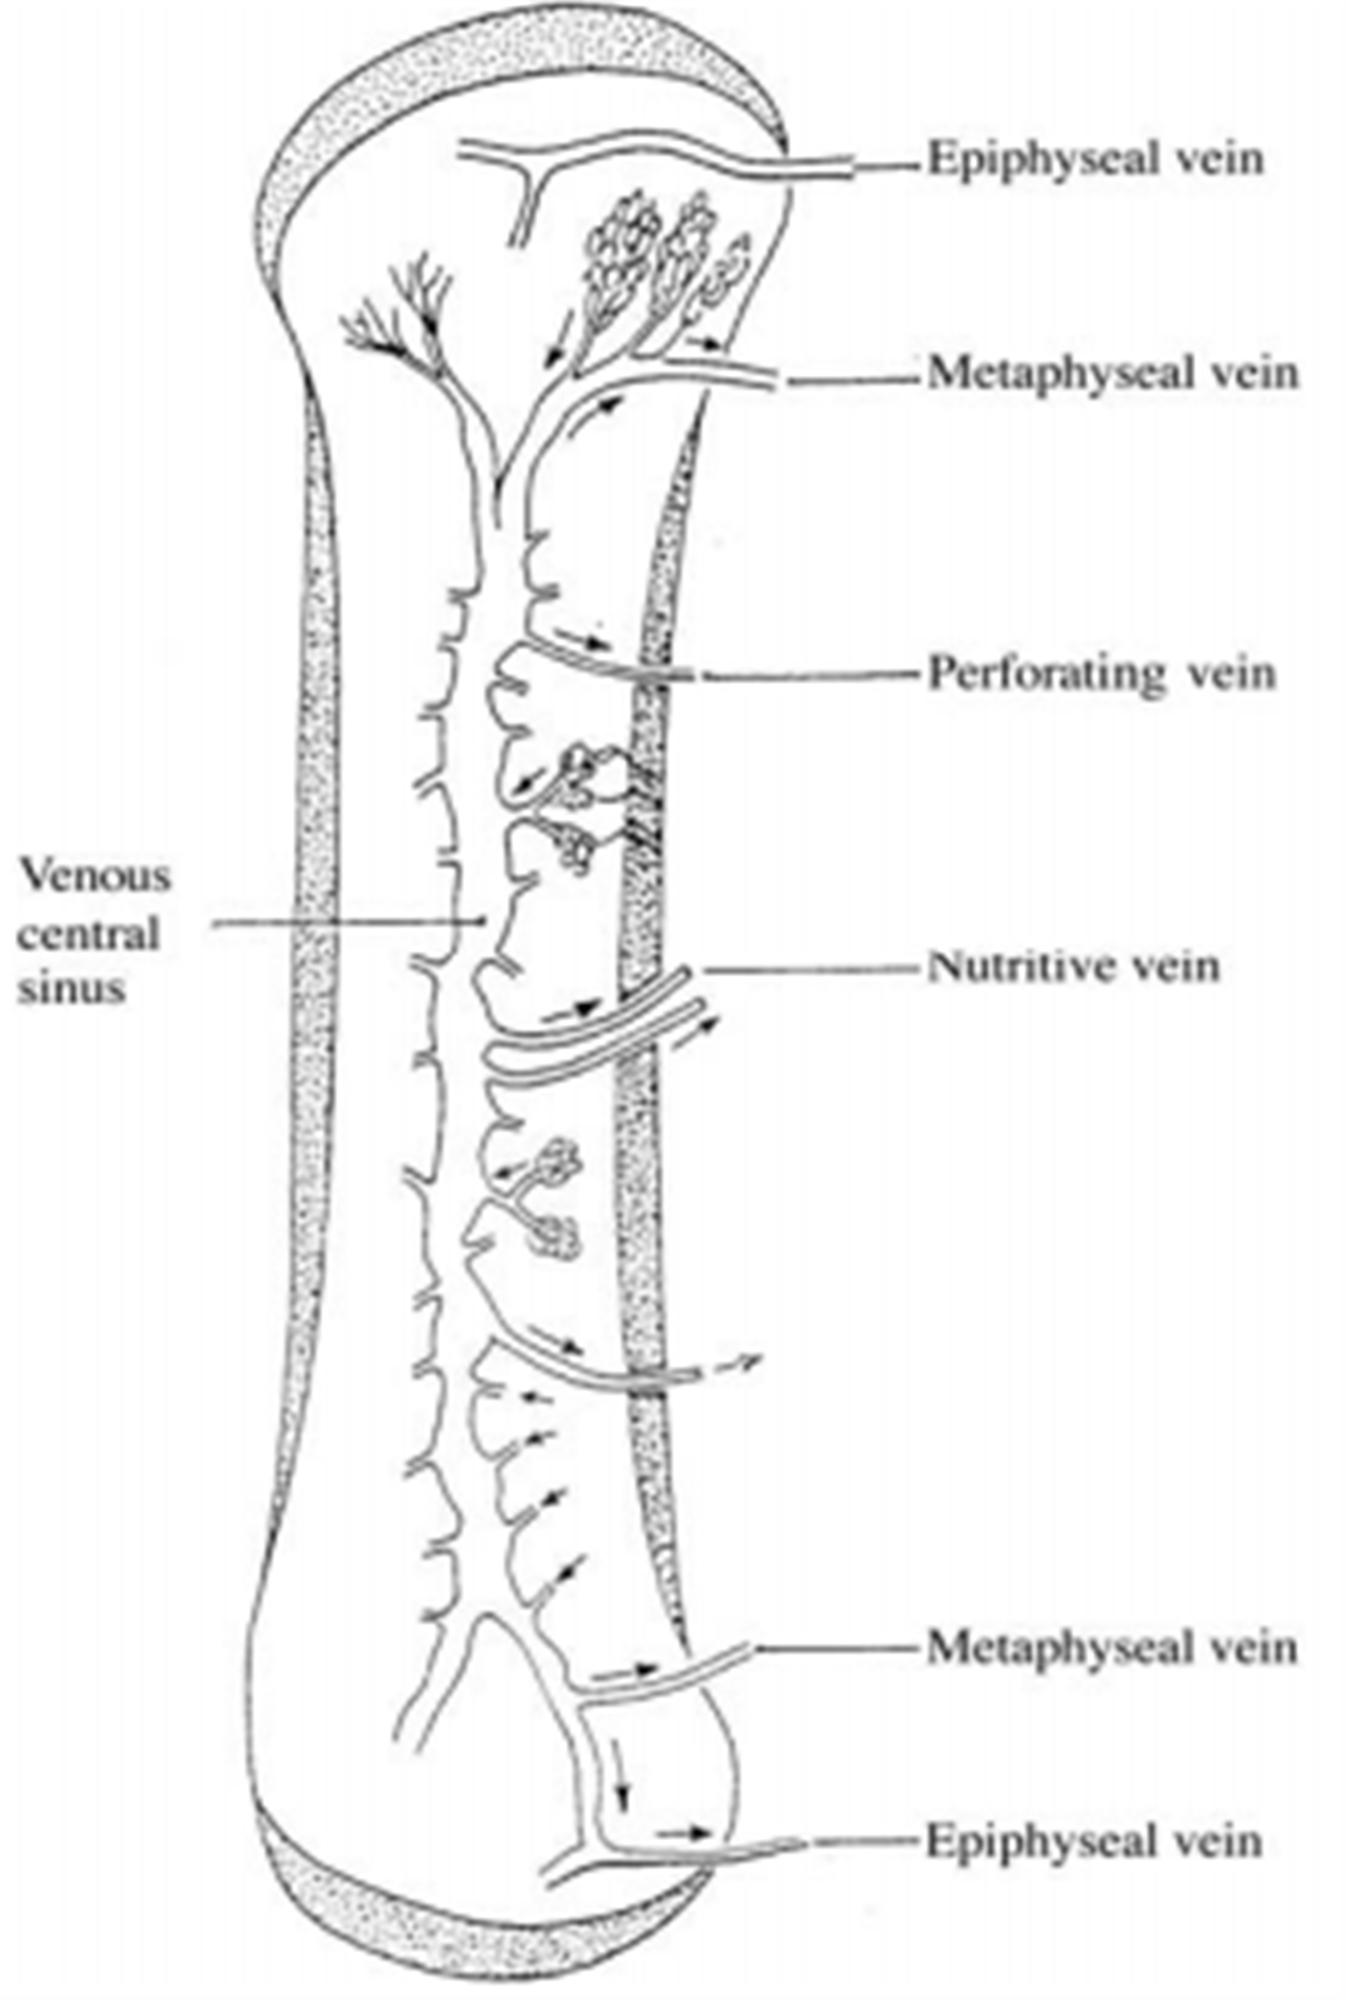 http://upload.orthobullets.com/topic/9005/images/venous vascularization of long bone.jpg